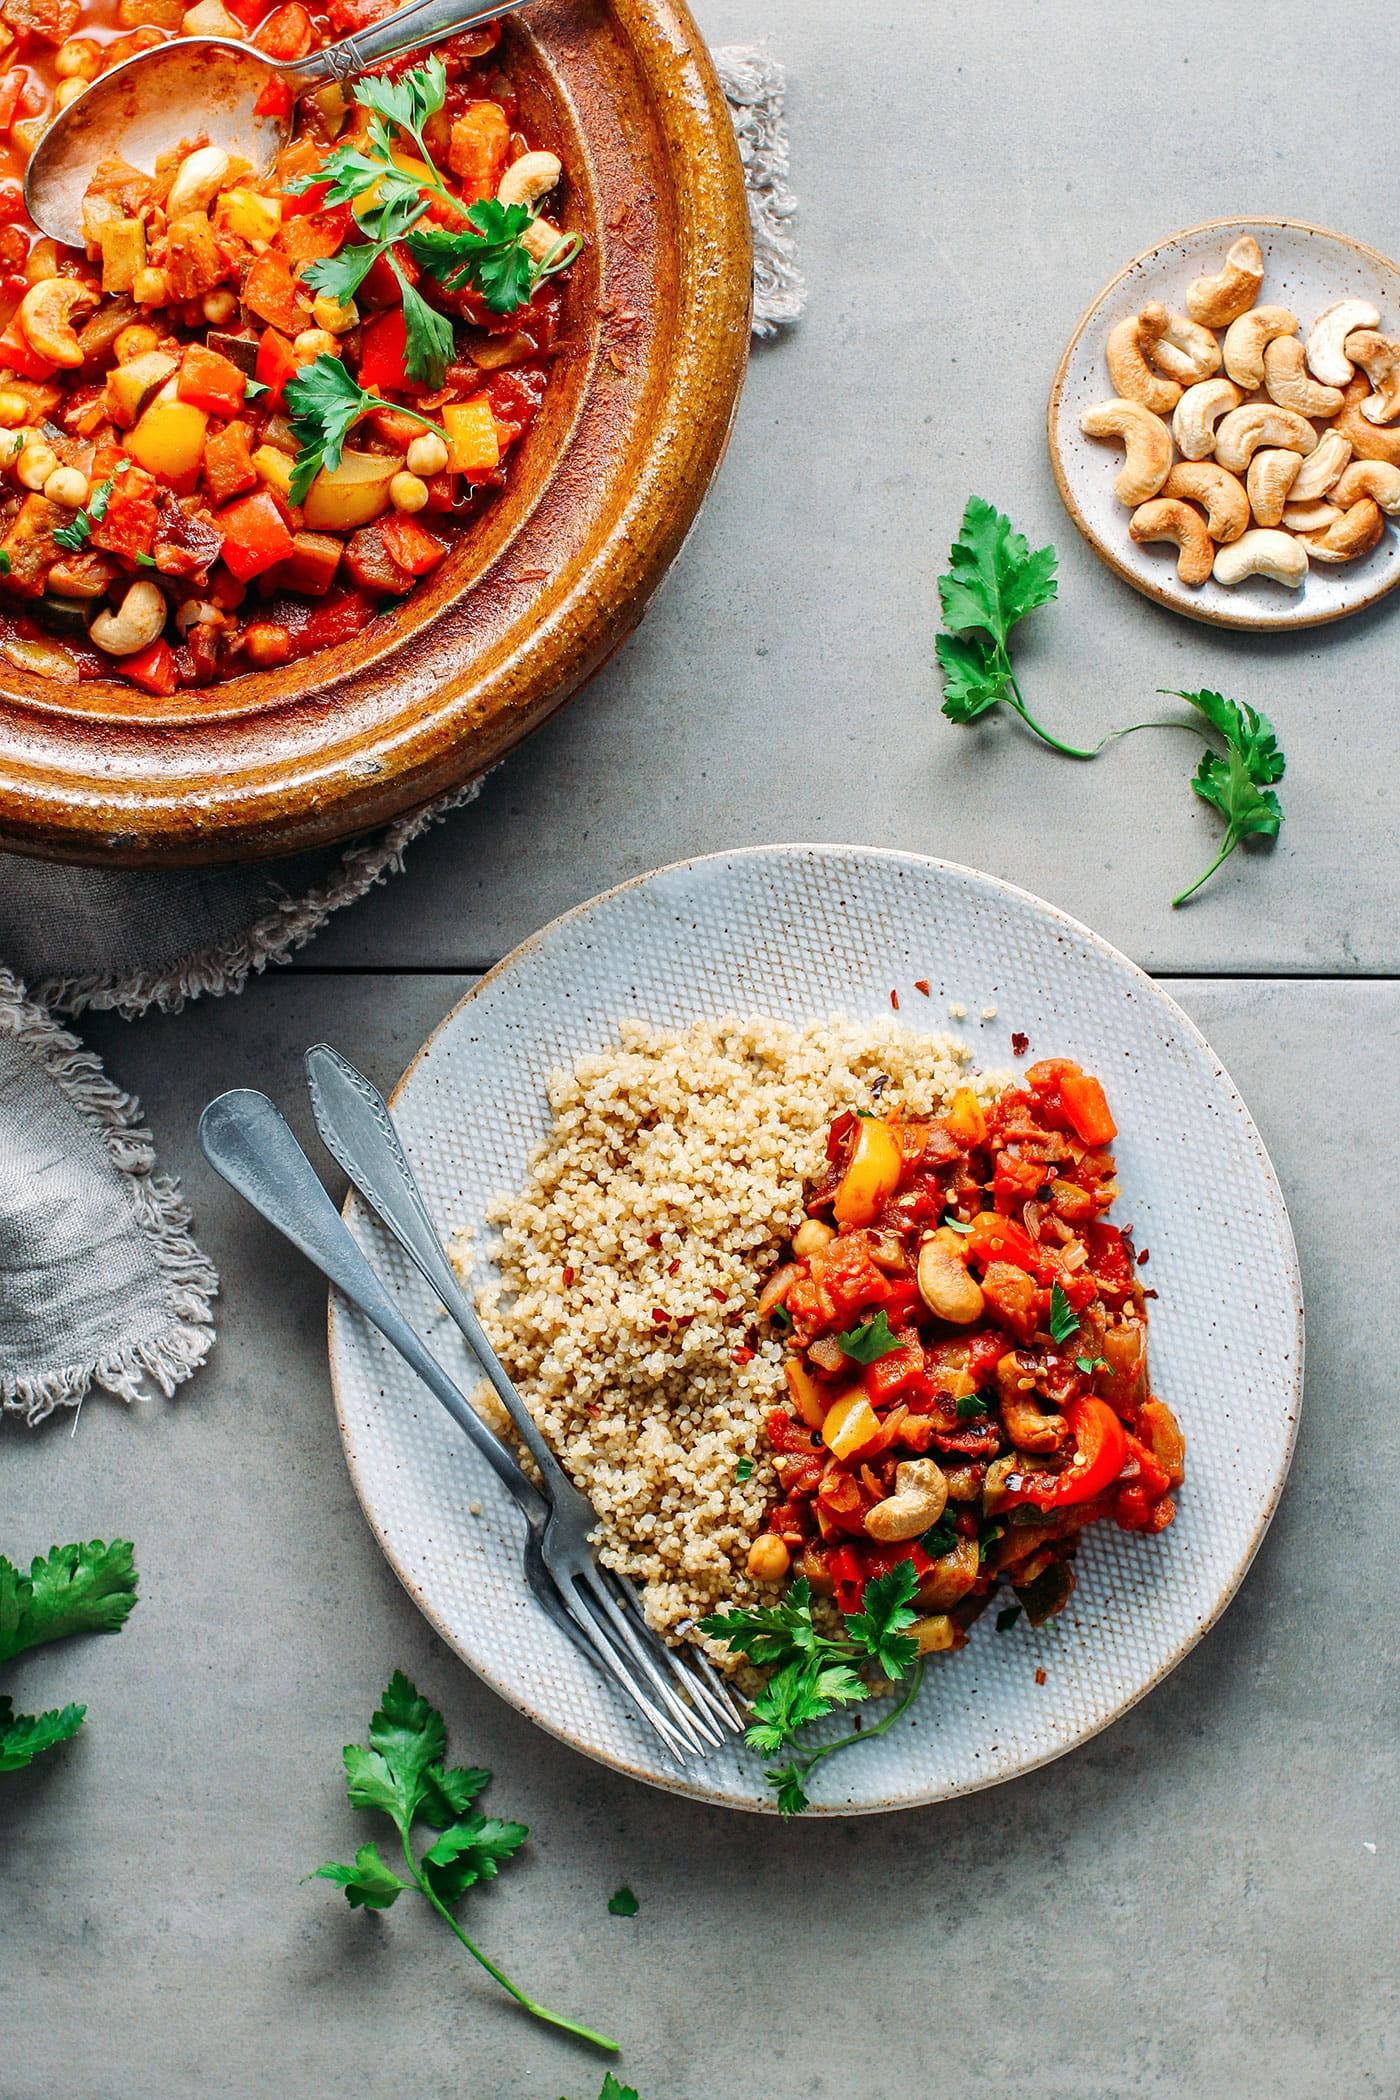 Chickpea & Cashew Vegetable Tagine